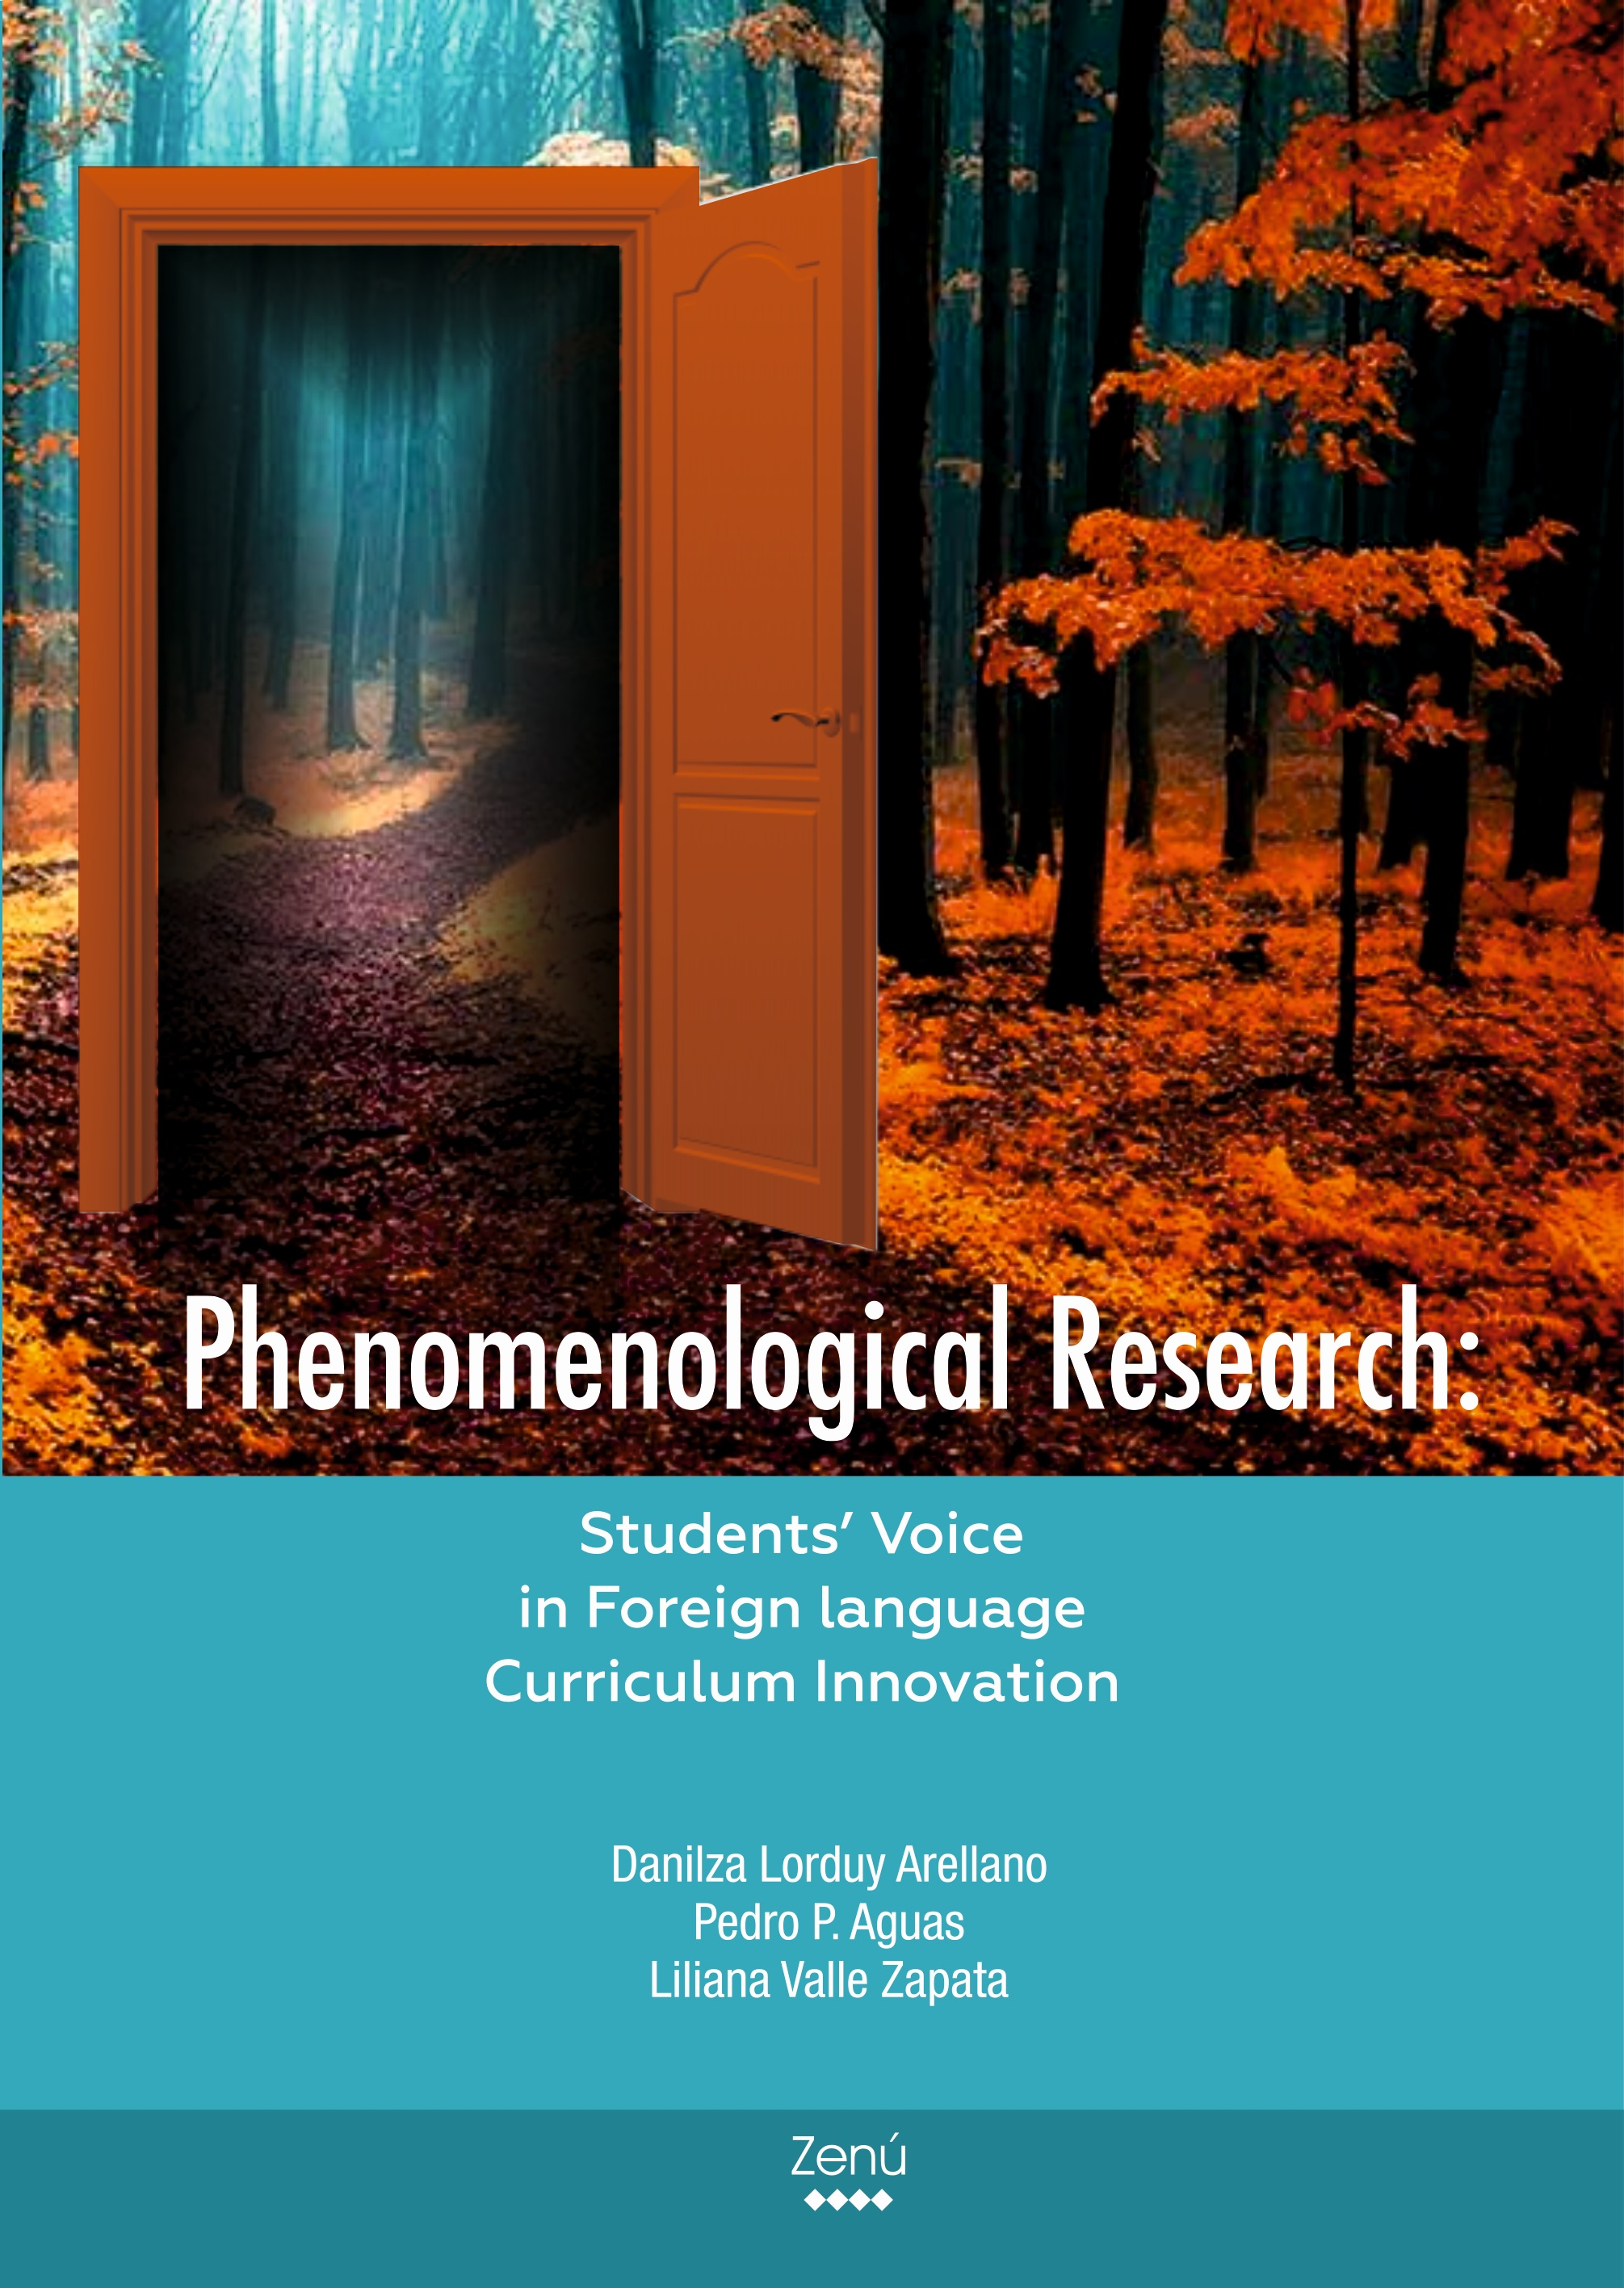 Phenomenological Research: Students' voices in foreign language curriculum innovation